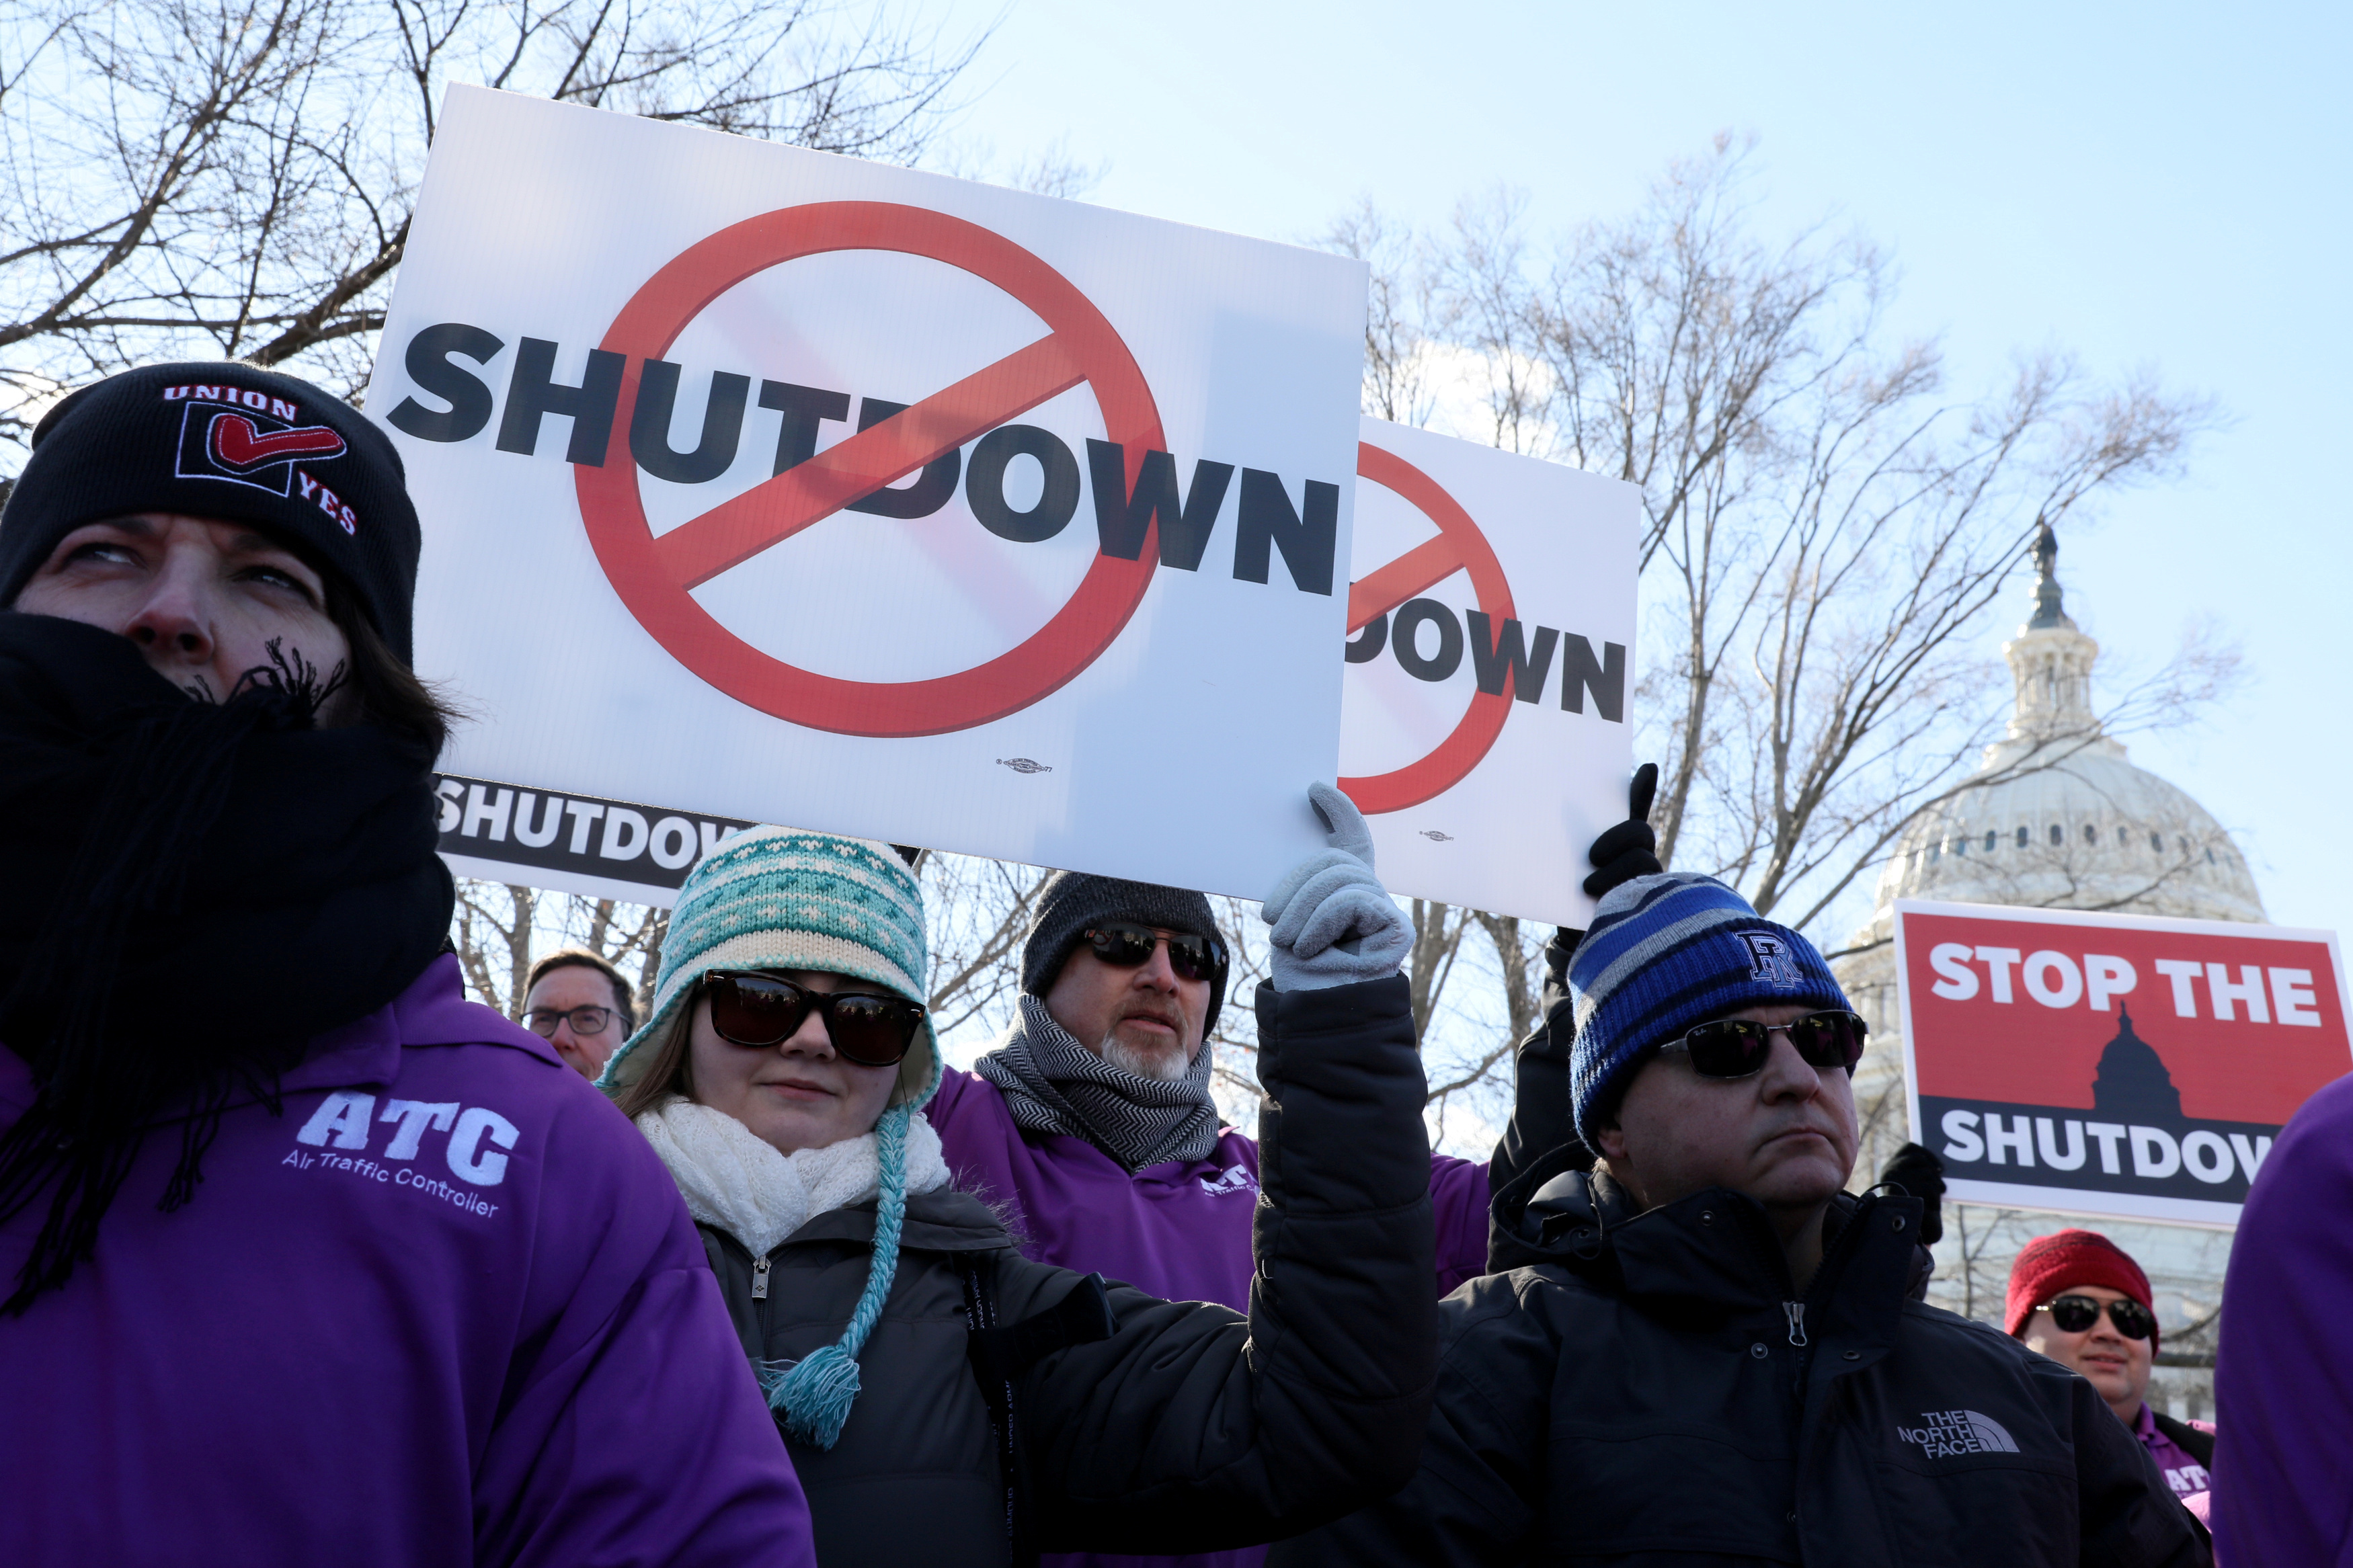 Federal air traffic controller union members protest the partial U.S. federal government shutdown in a rally at the U.S. Capitol in Washington, U.S. Jan. 10, 2019. REUTERS/Jonathan Ernst